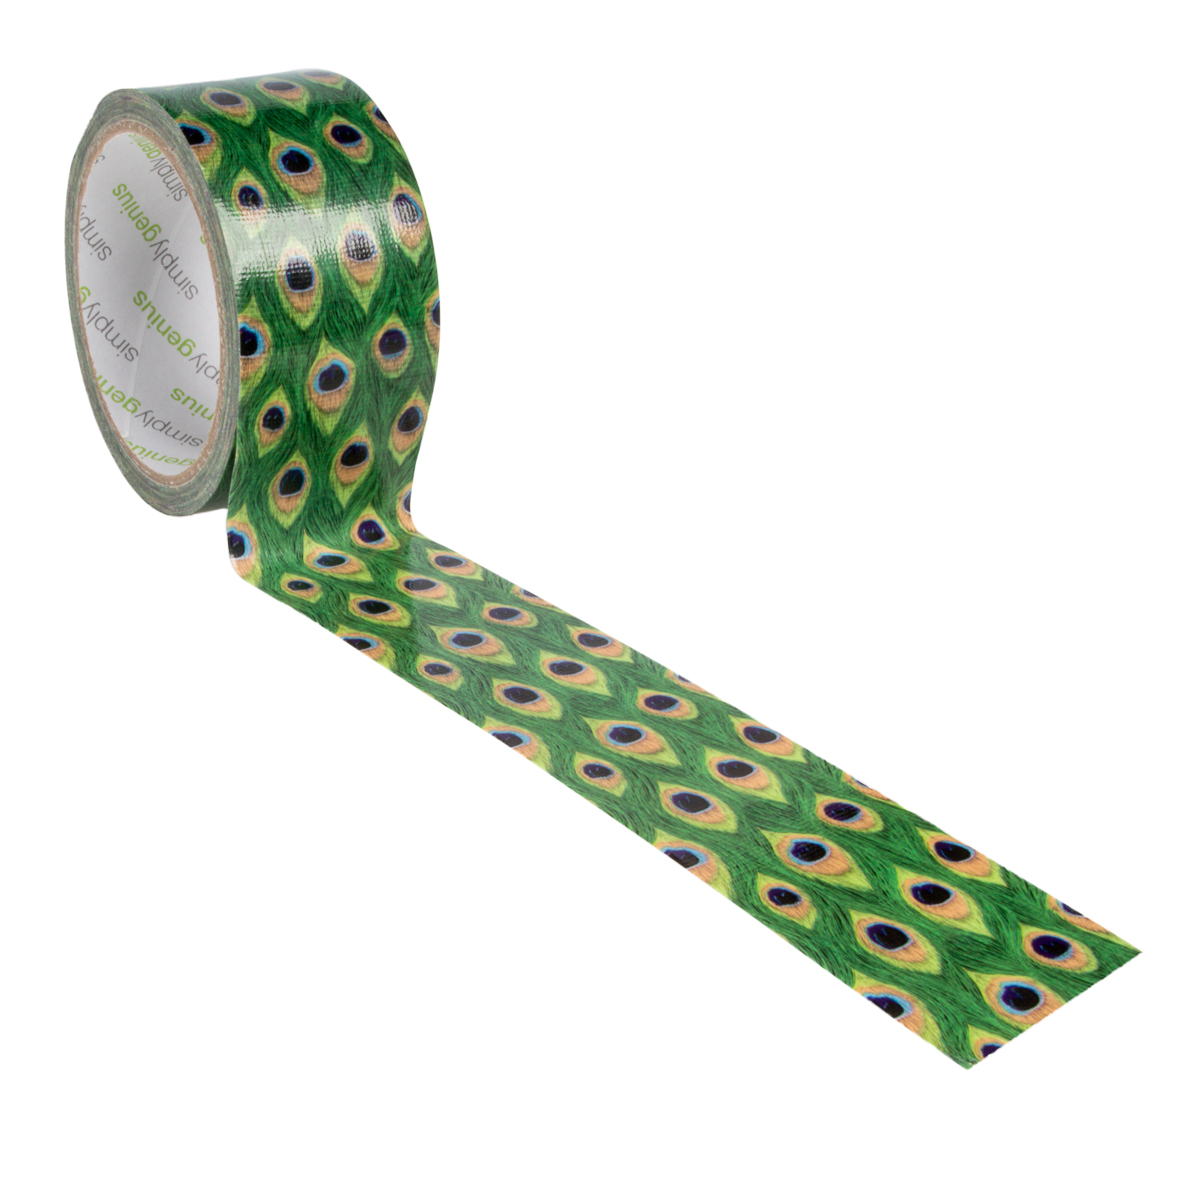 Simply-Genius-Duct-Tape-Roll-Colors-Patterns-Craft-Supplies-Colored-amp-Patterned thumbnail 126